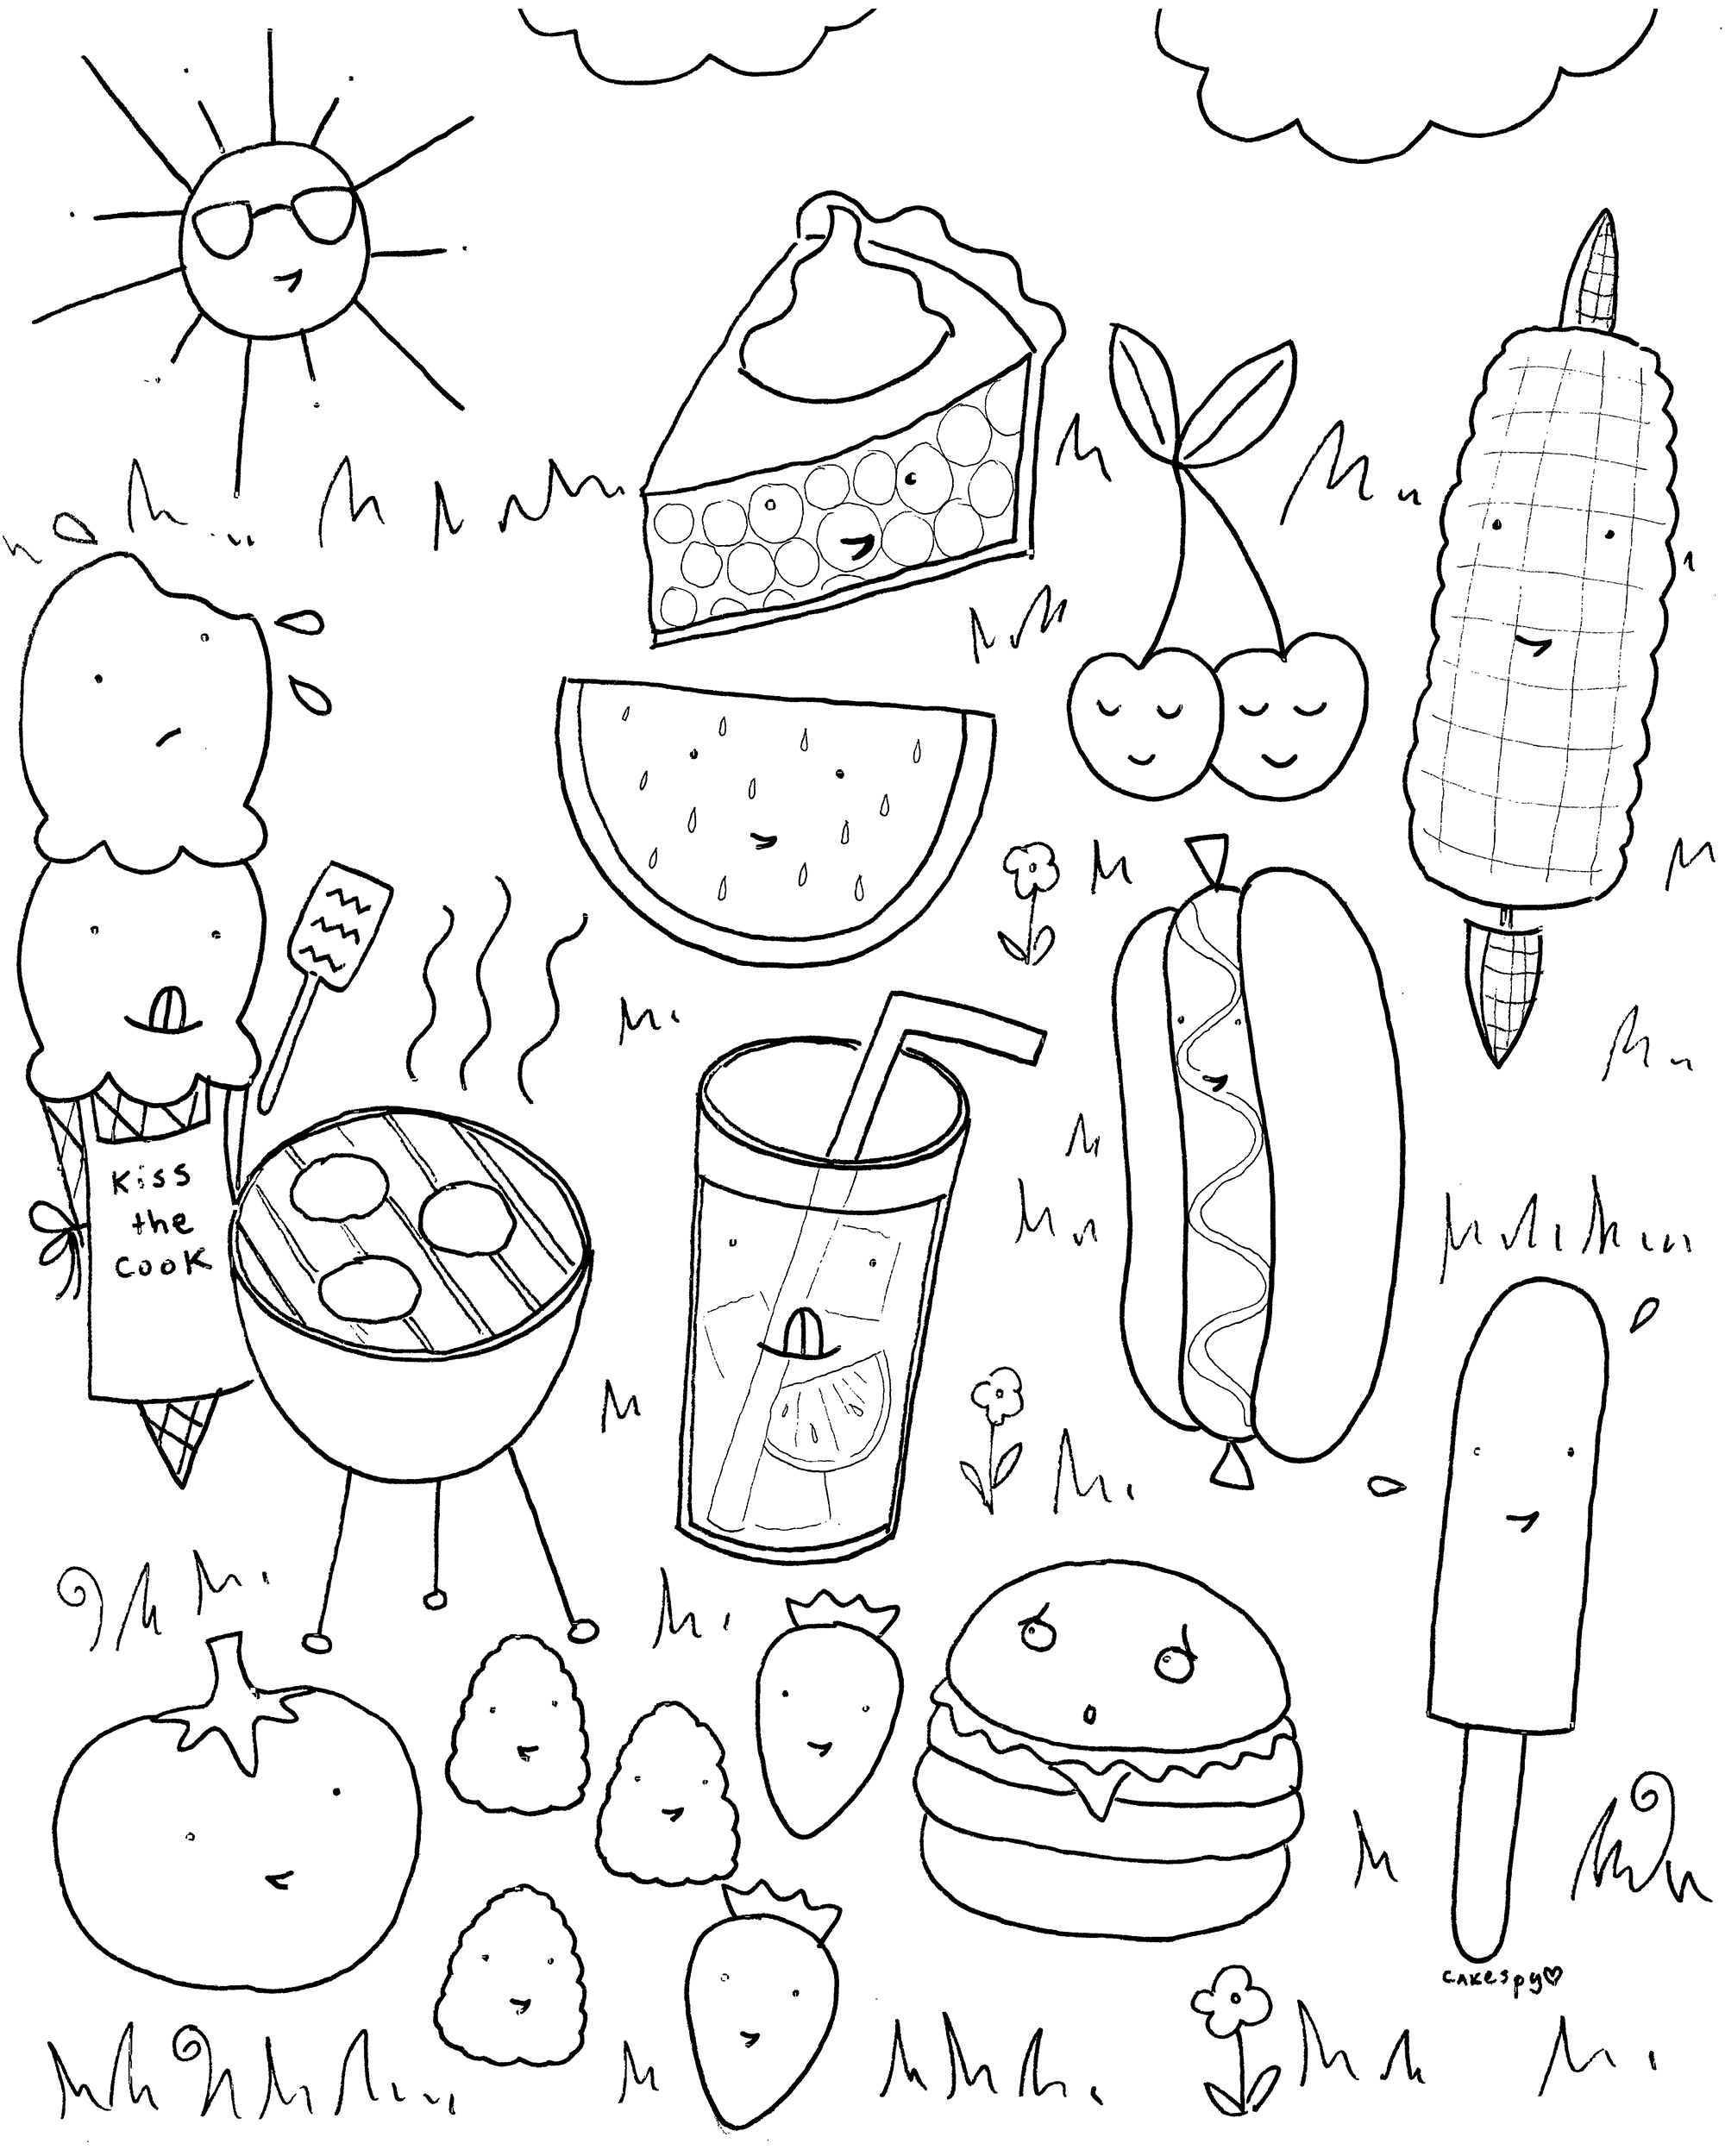 2000x2500 Coloring Pages Food Cute Epartners Me Coloring